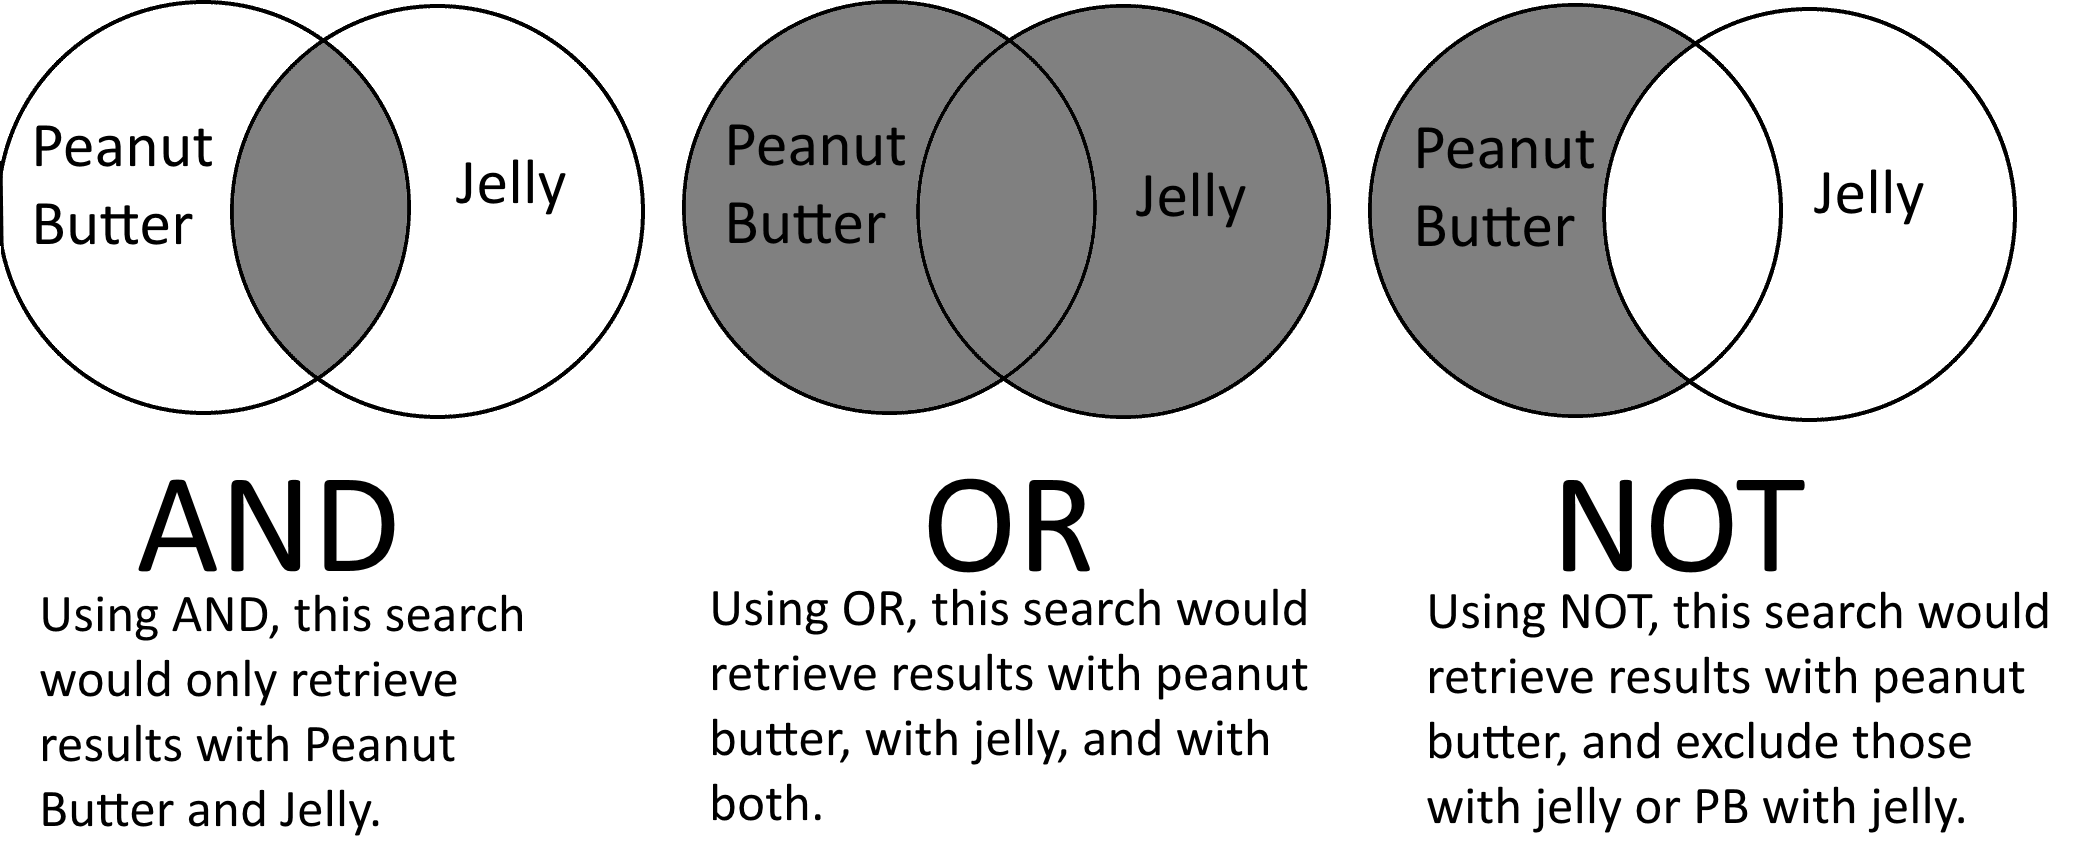 Three venn diagrams. Peanut butter and jelly. Peanut butter or jelly. Peanut butter not jelly.